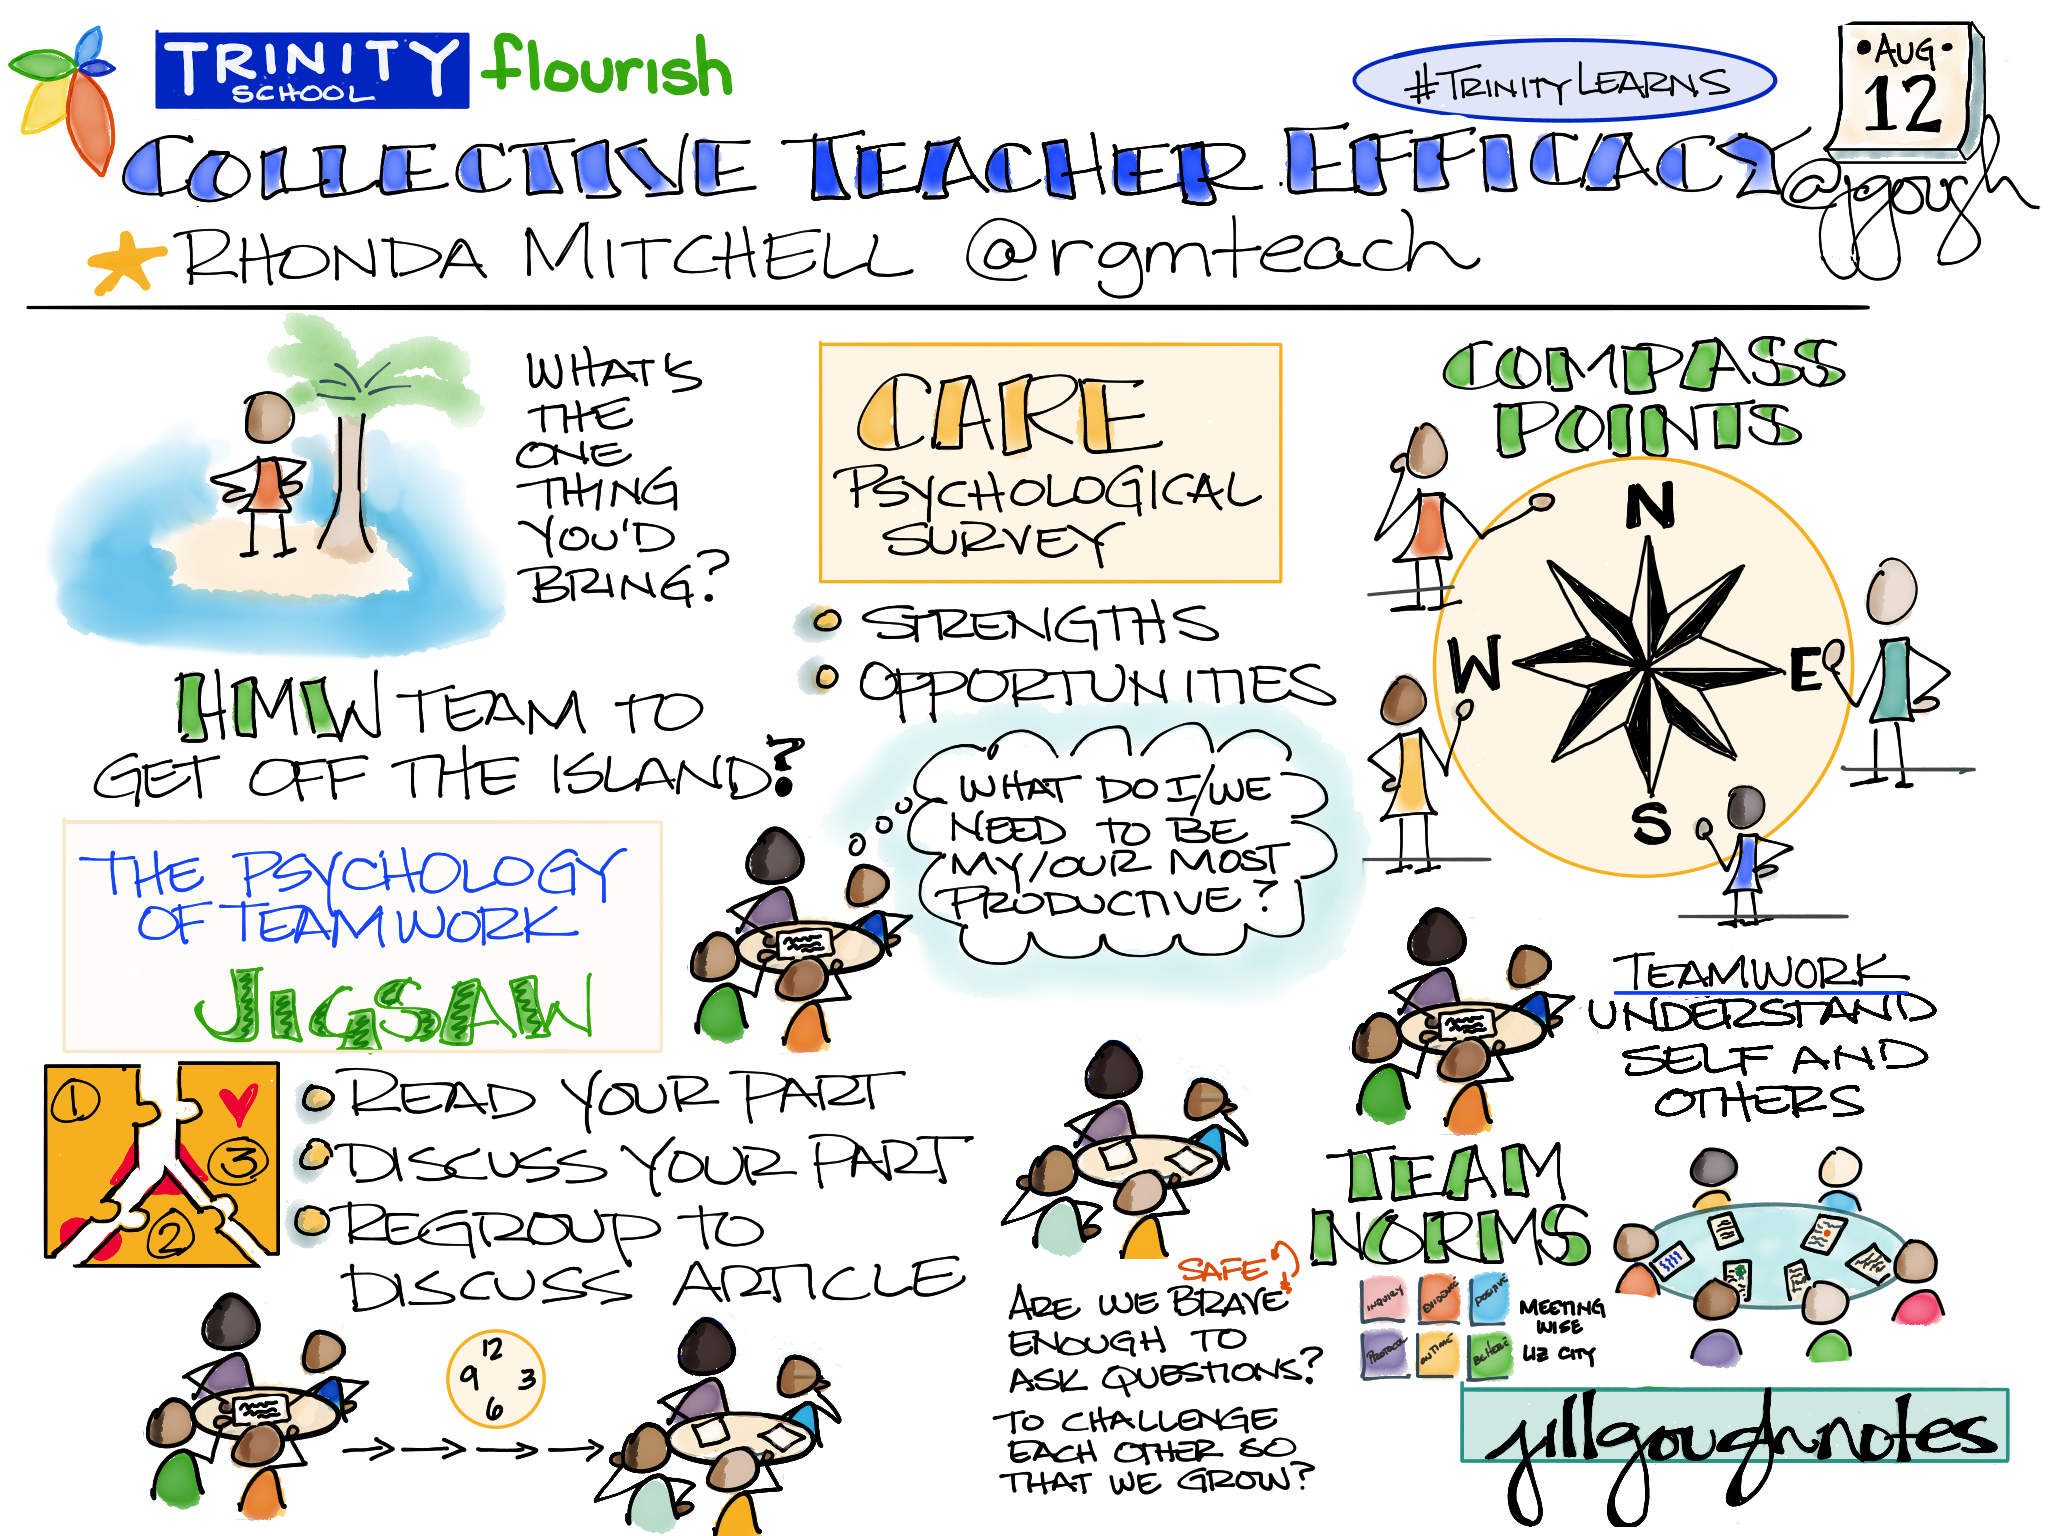 Sharing my #Sketchnotes from @rgmteach #TrinityLearns #EED session. Are we brave/safe enough to challenge?